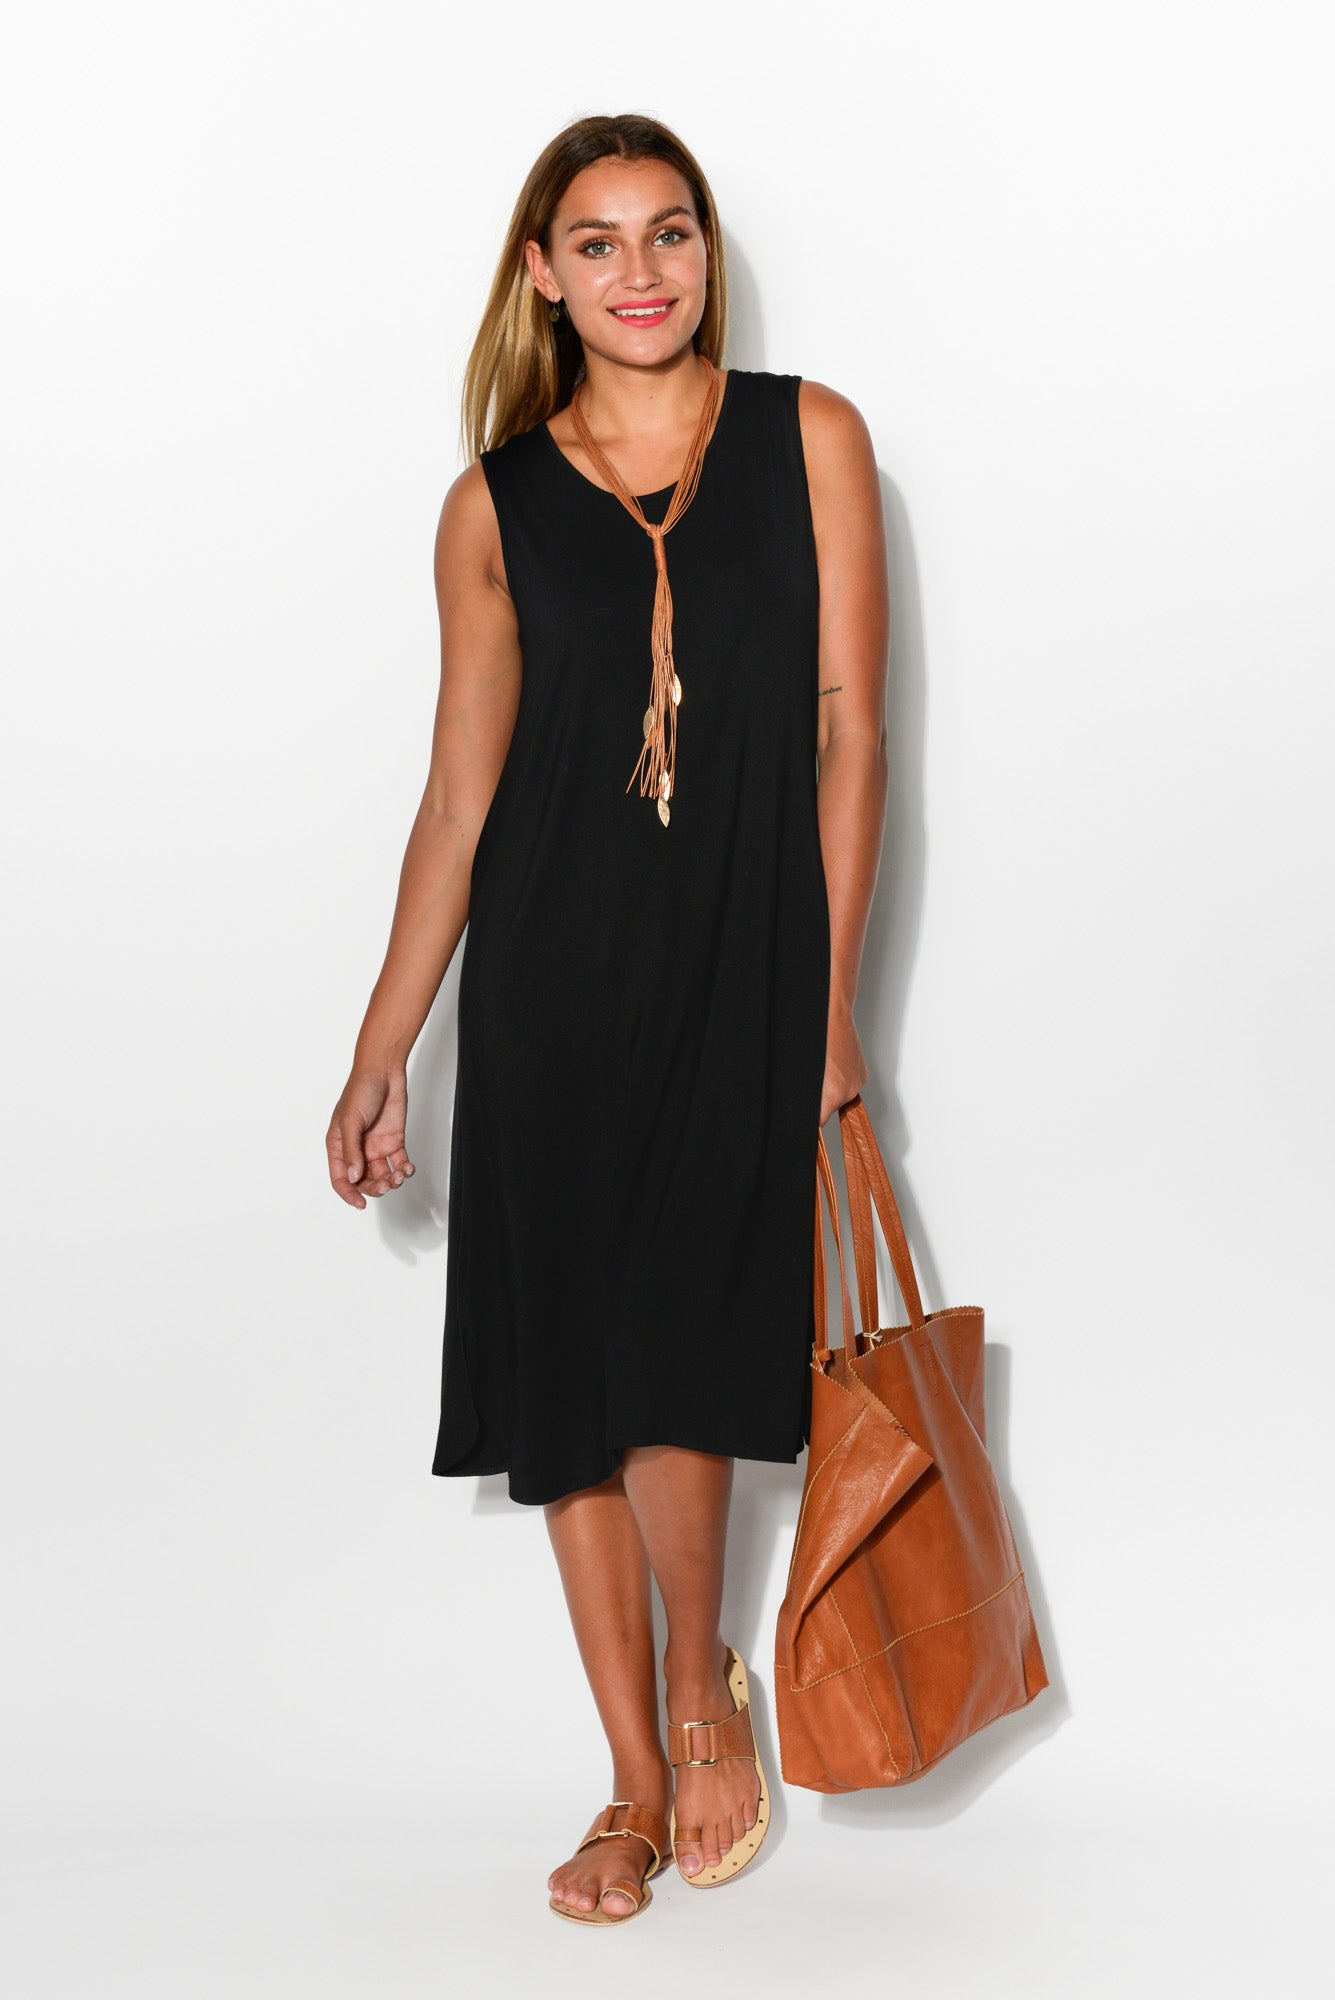 Tara Black Bamboo Tank Dress - Blue Bungalow